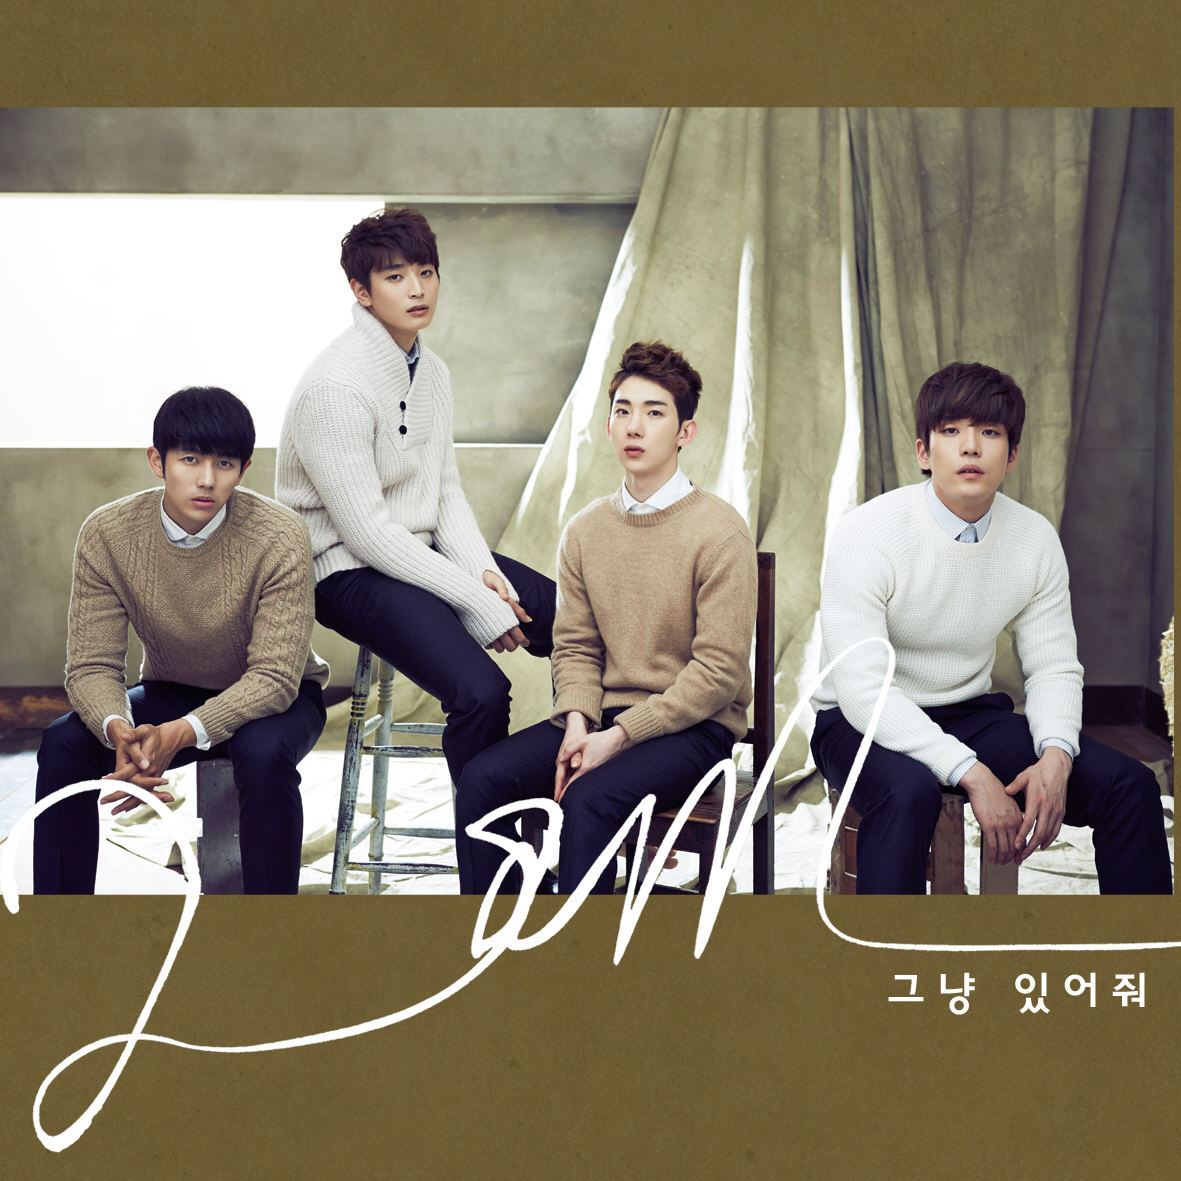 [Single] 2AM - Nocturne